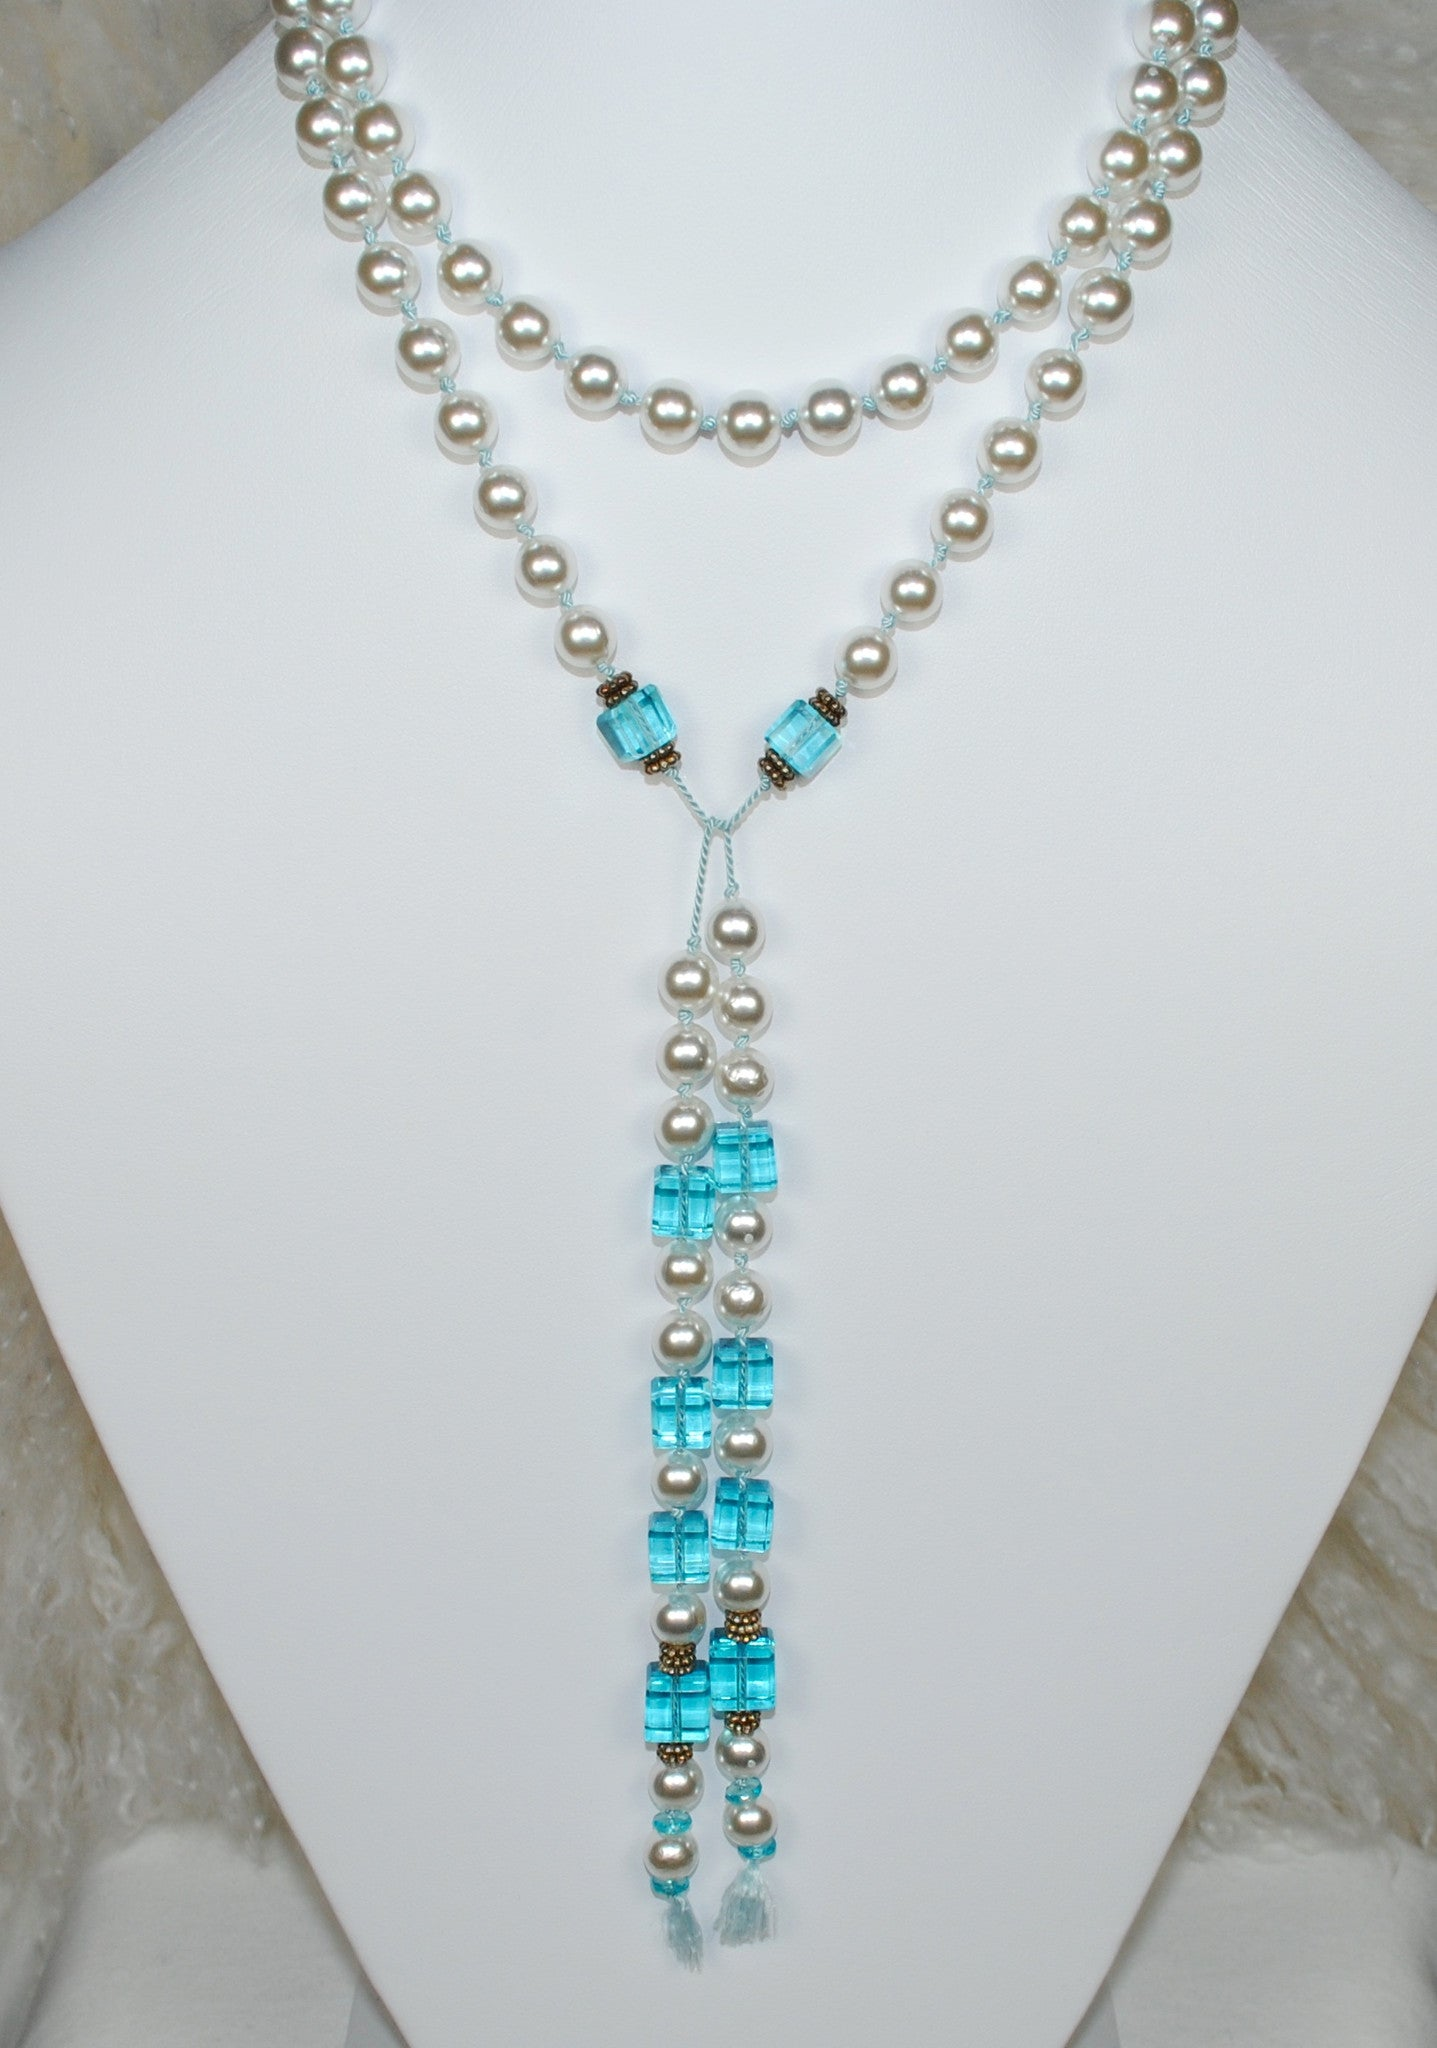 Pearl Lariat Necklace w/ Blue Beads